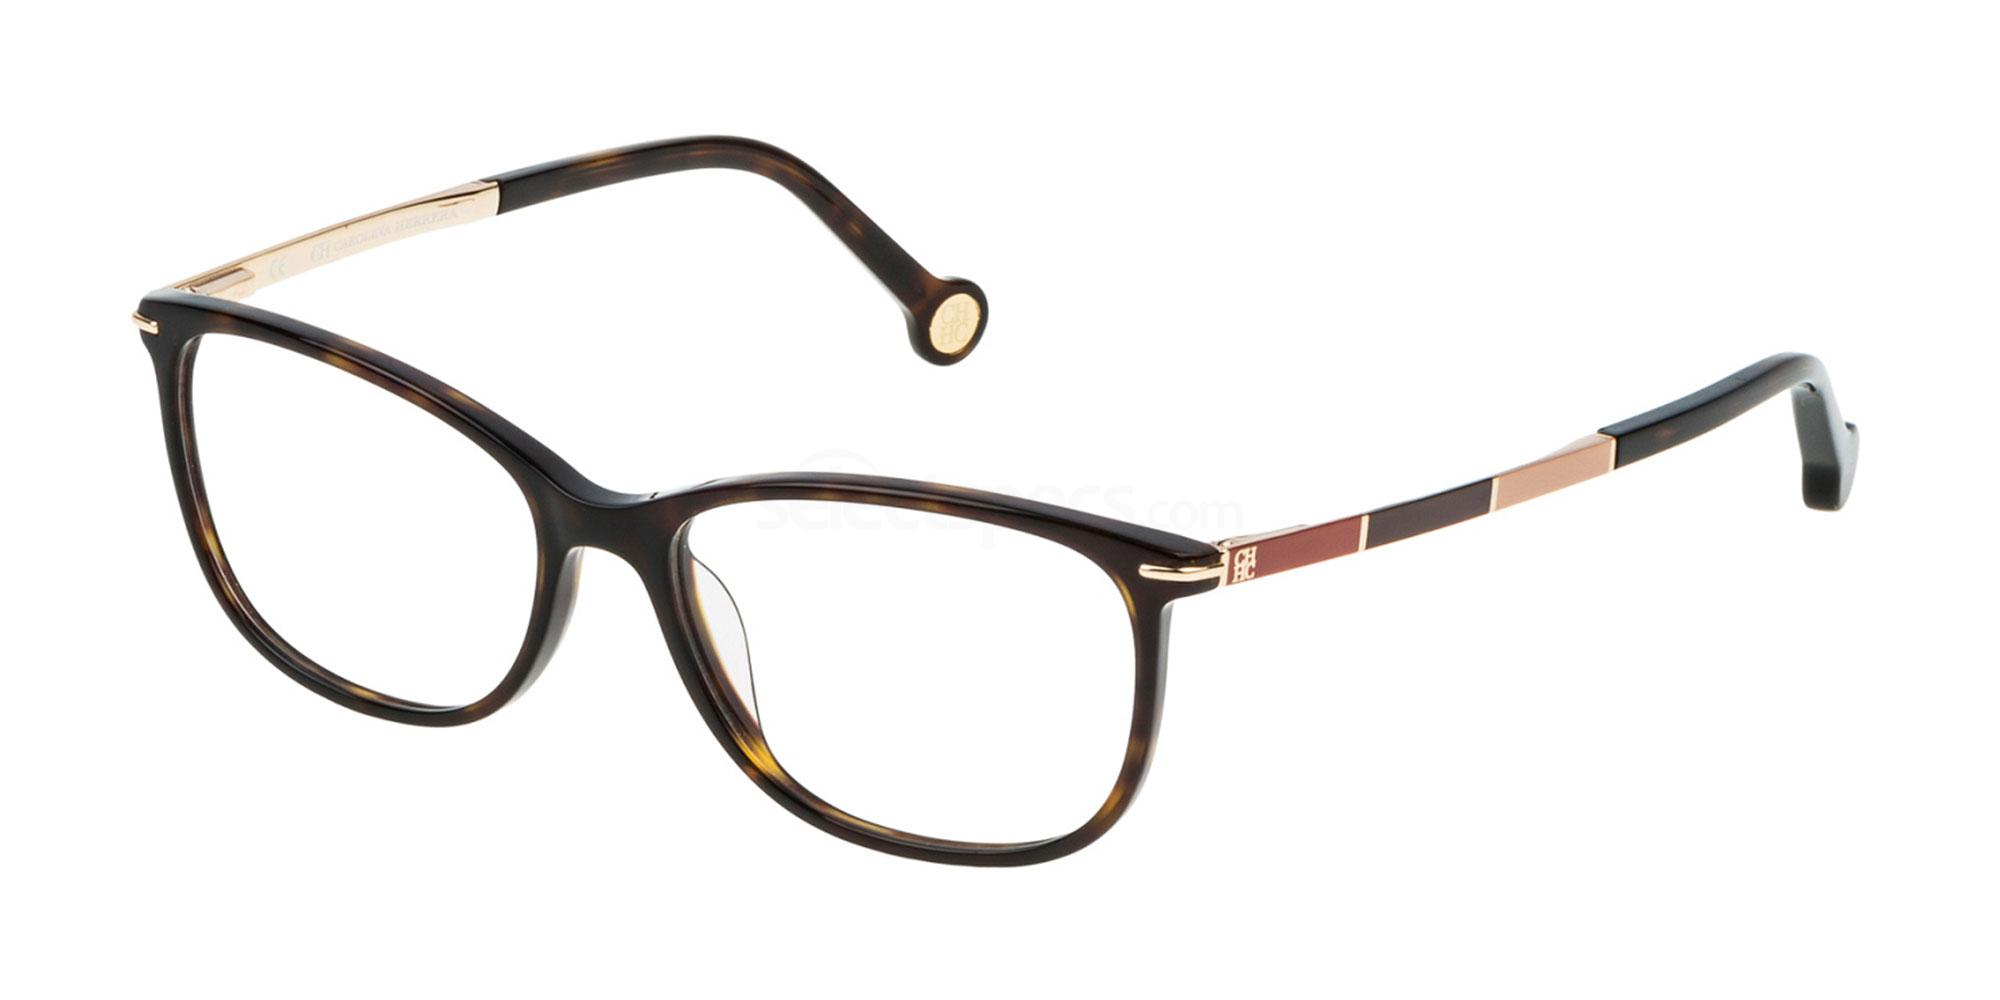 0722 VHE670 Glasses, CH Carolina Herrera